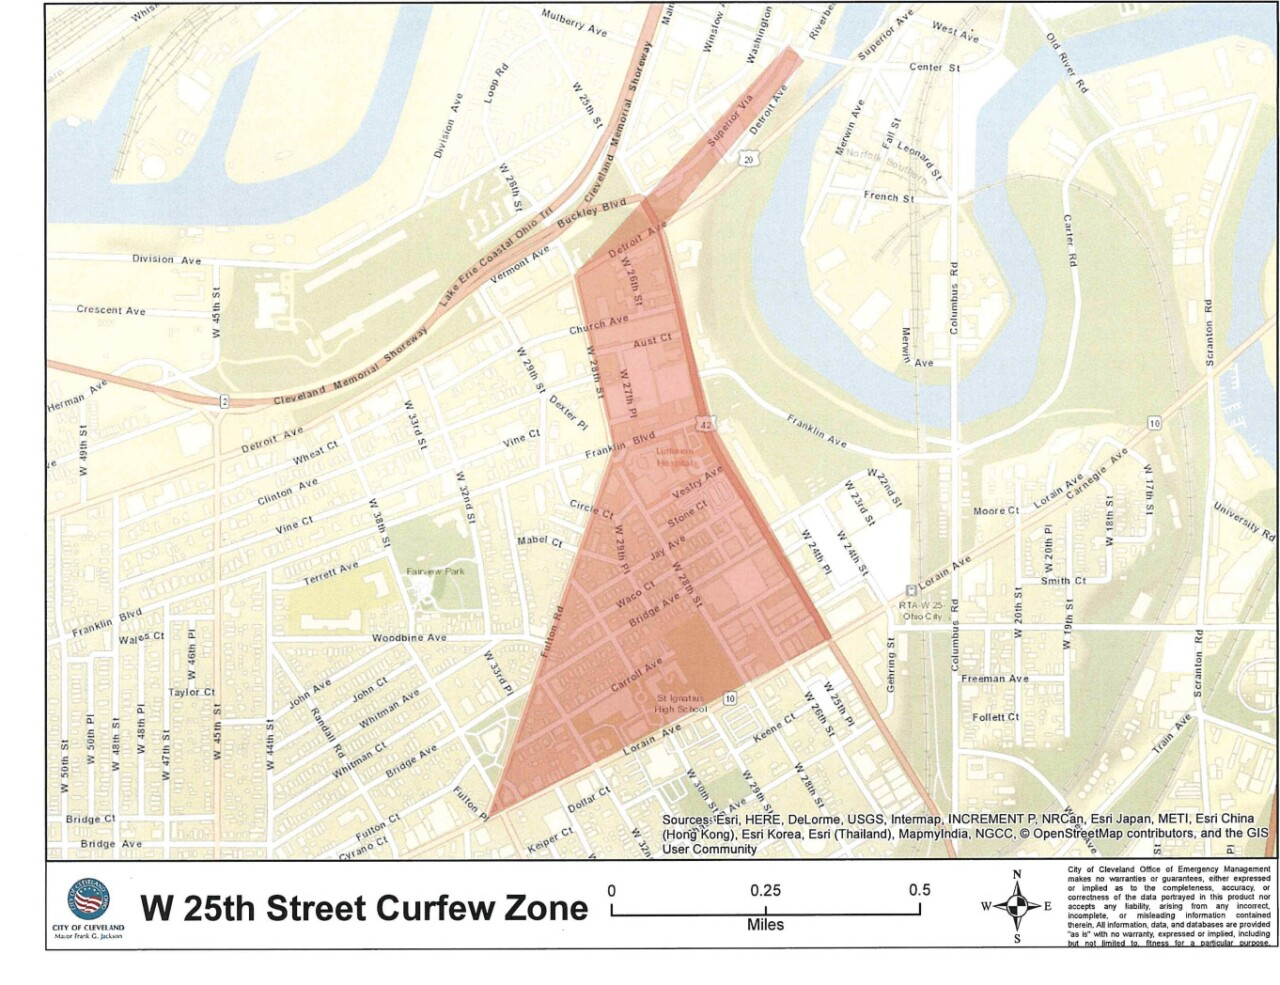 West 25th Street curfew zone.jpg